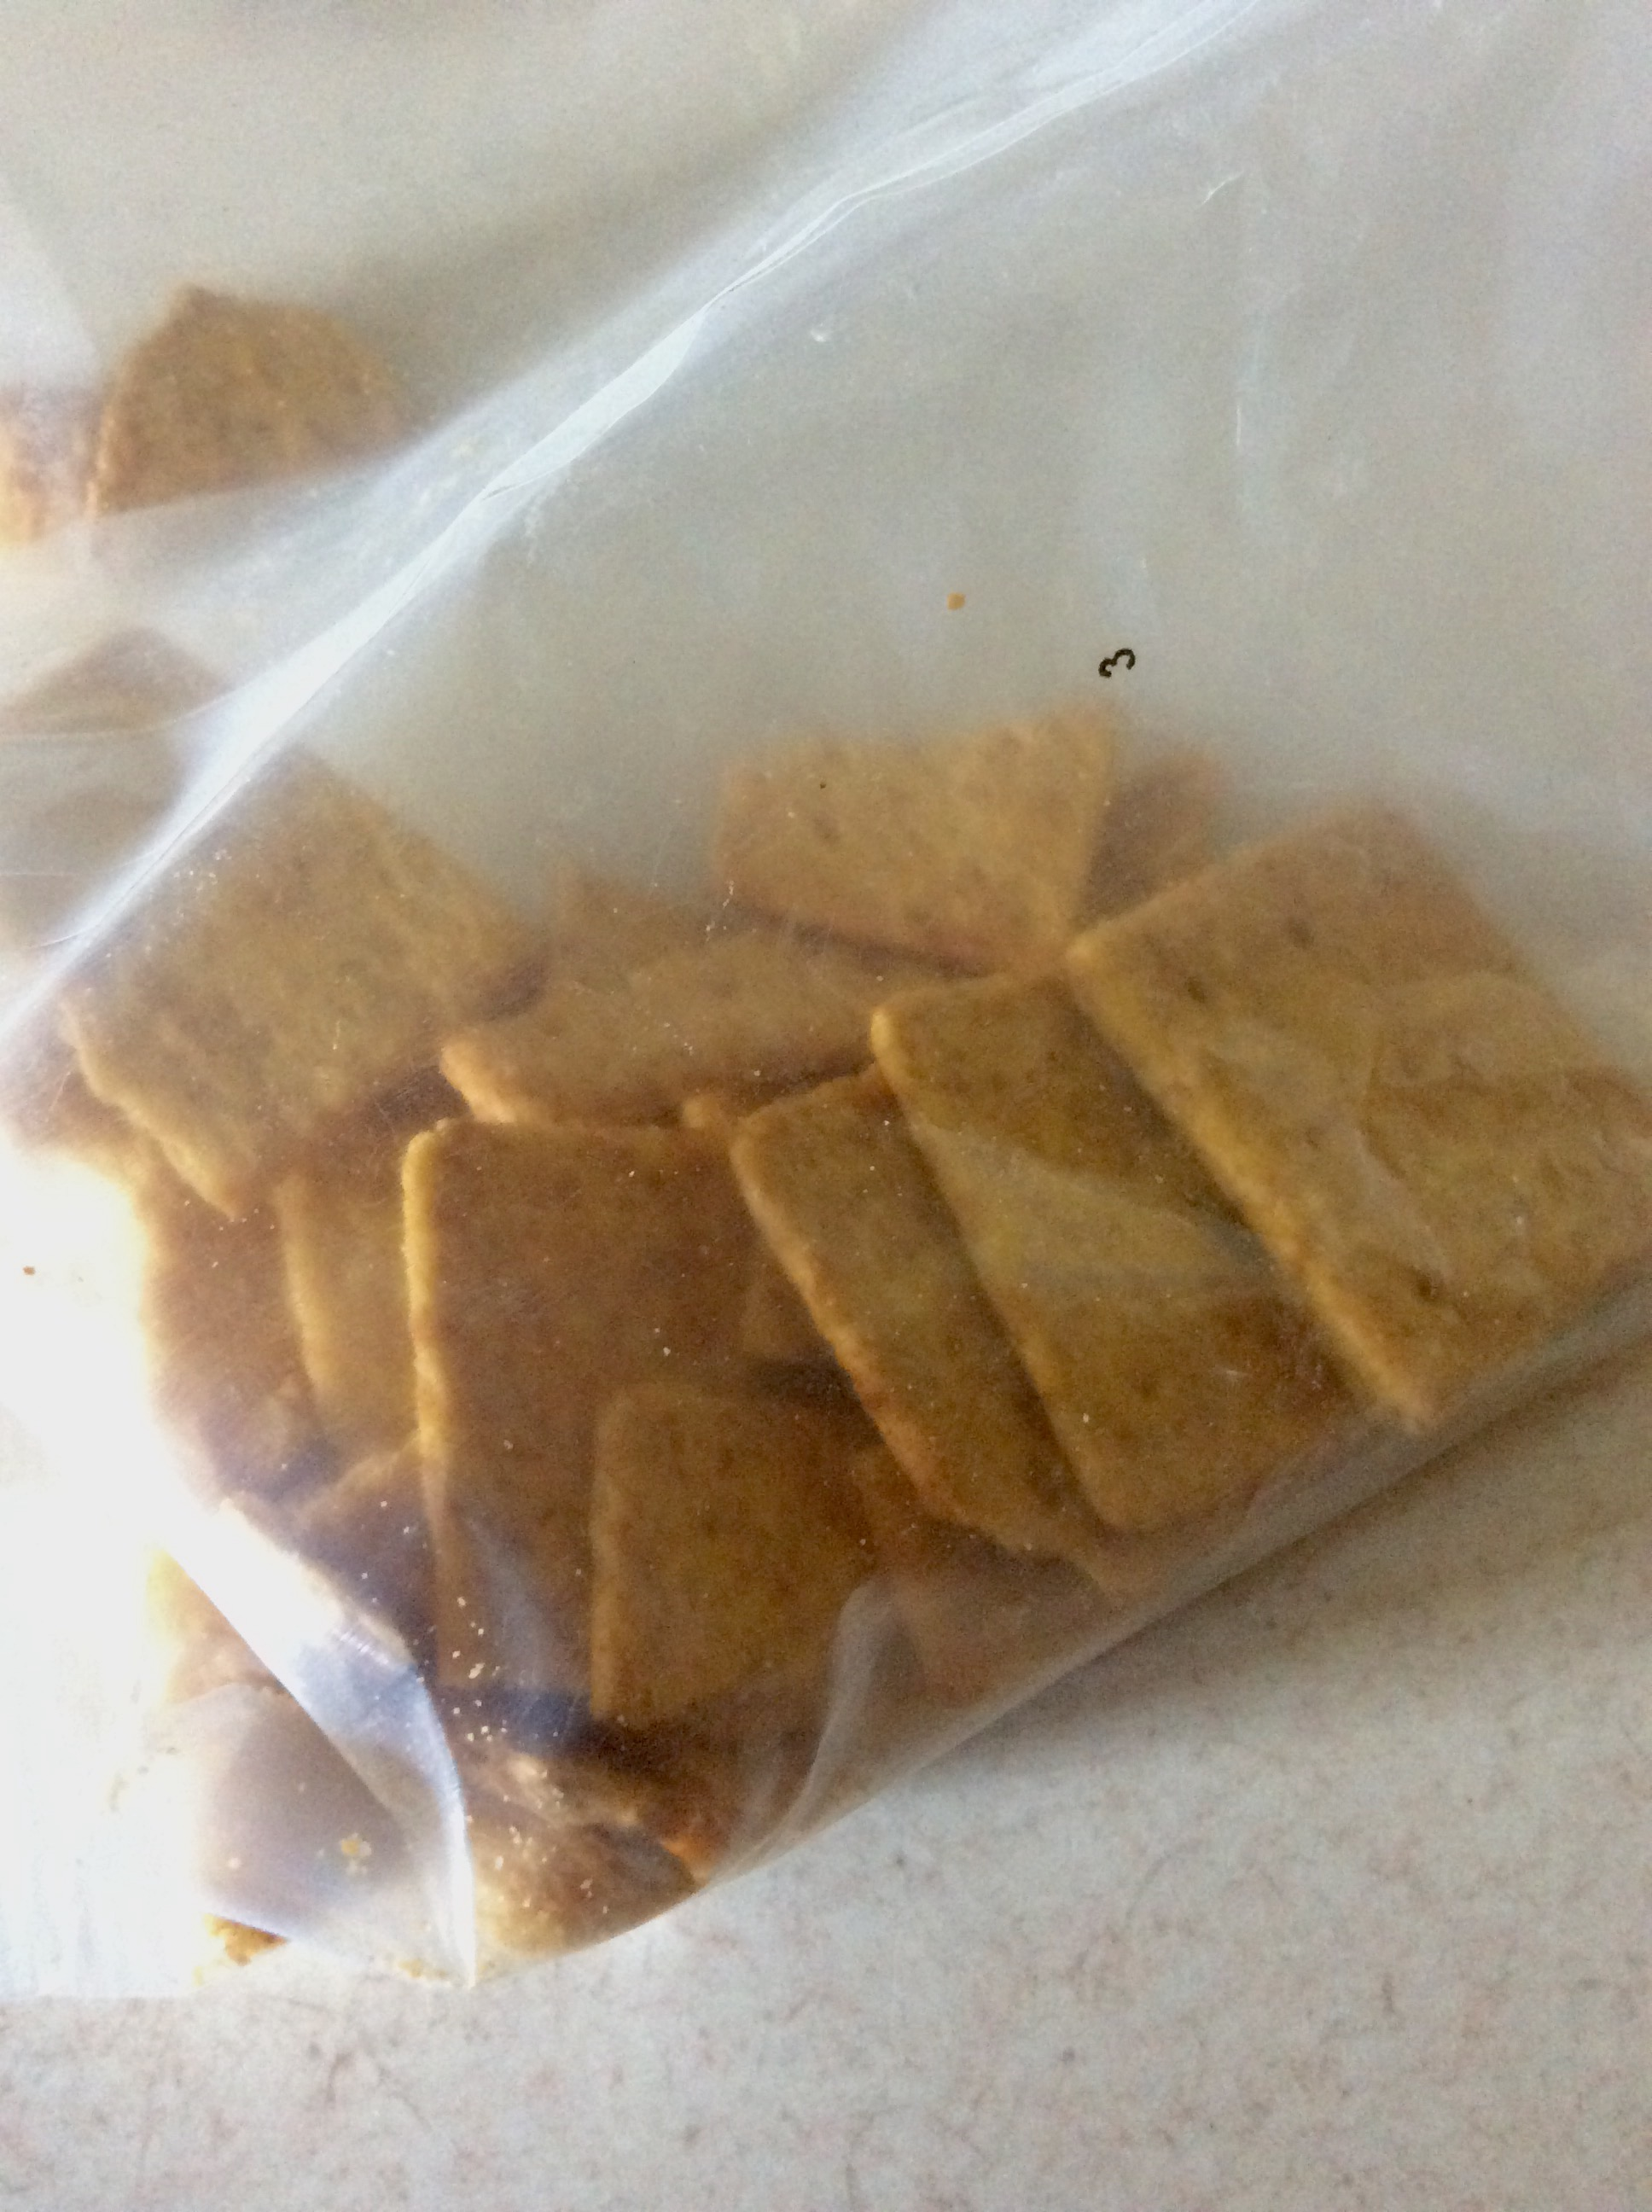 Generic bag of wheat thin crackers